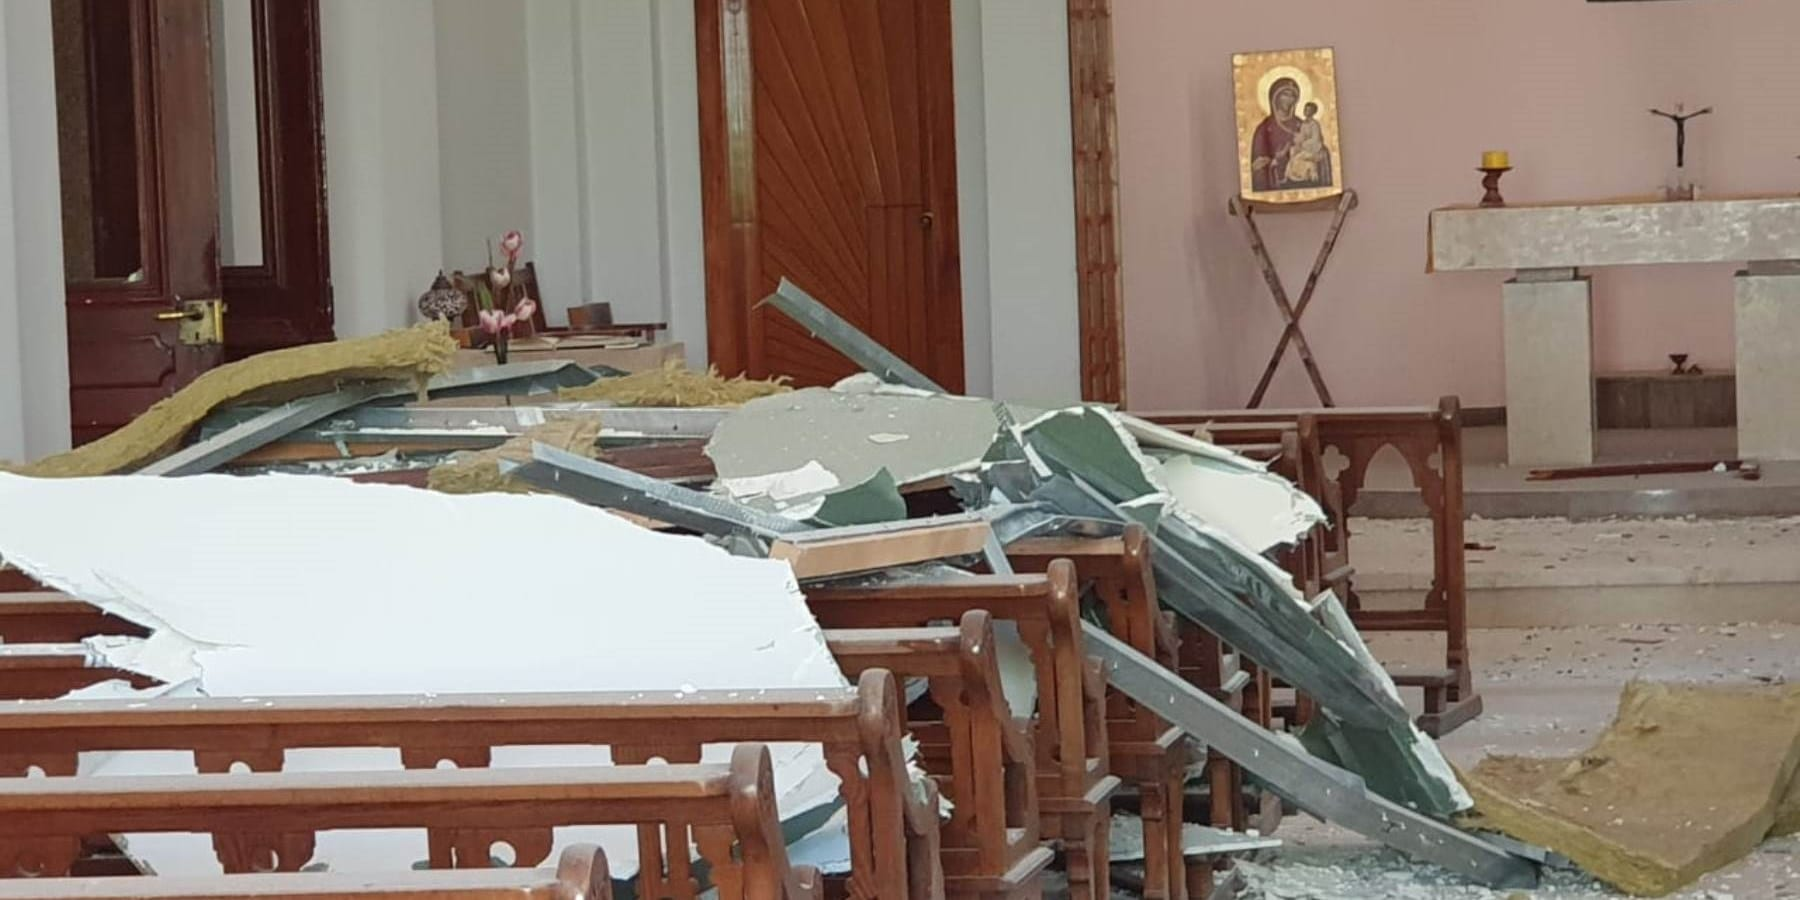 rubble fills the pews in a chapel seriously damaged by an explosion.